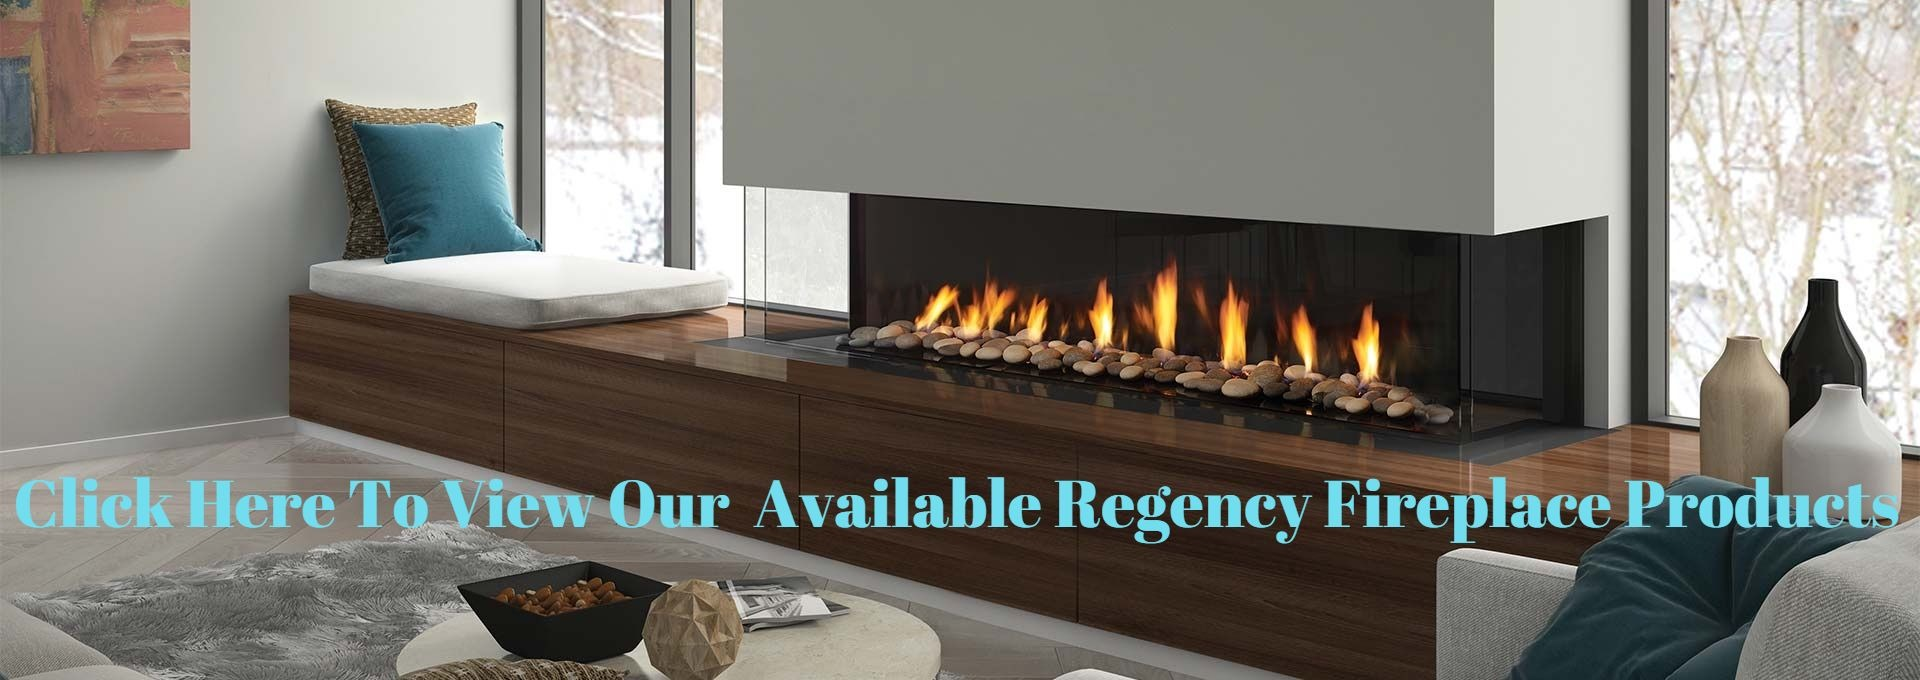 Click to view our available Regency fireplace products